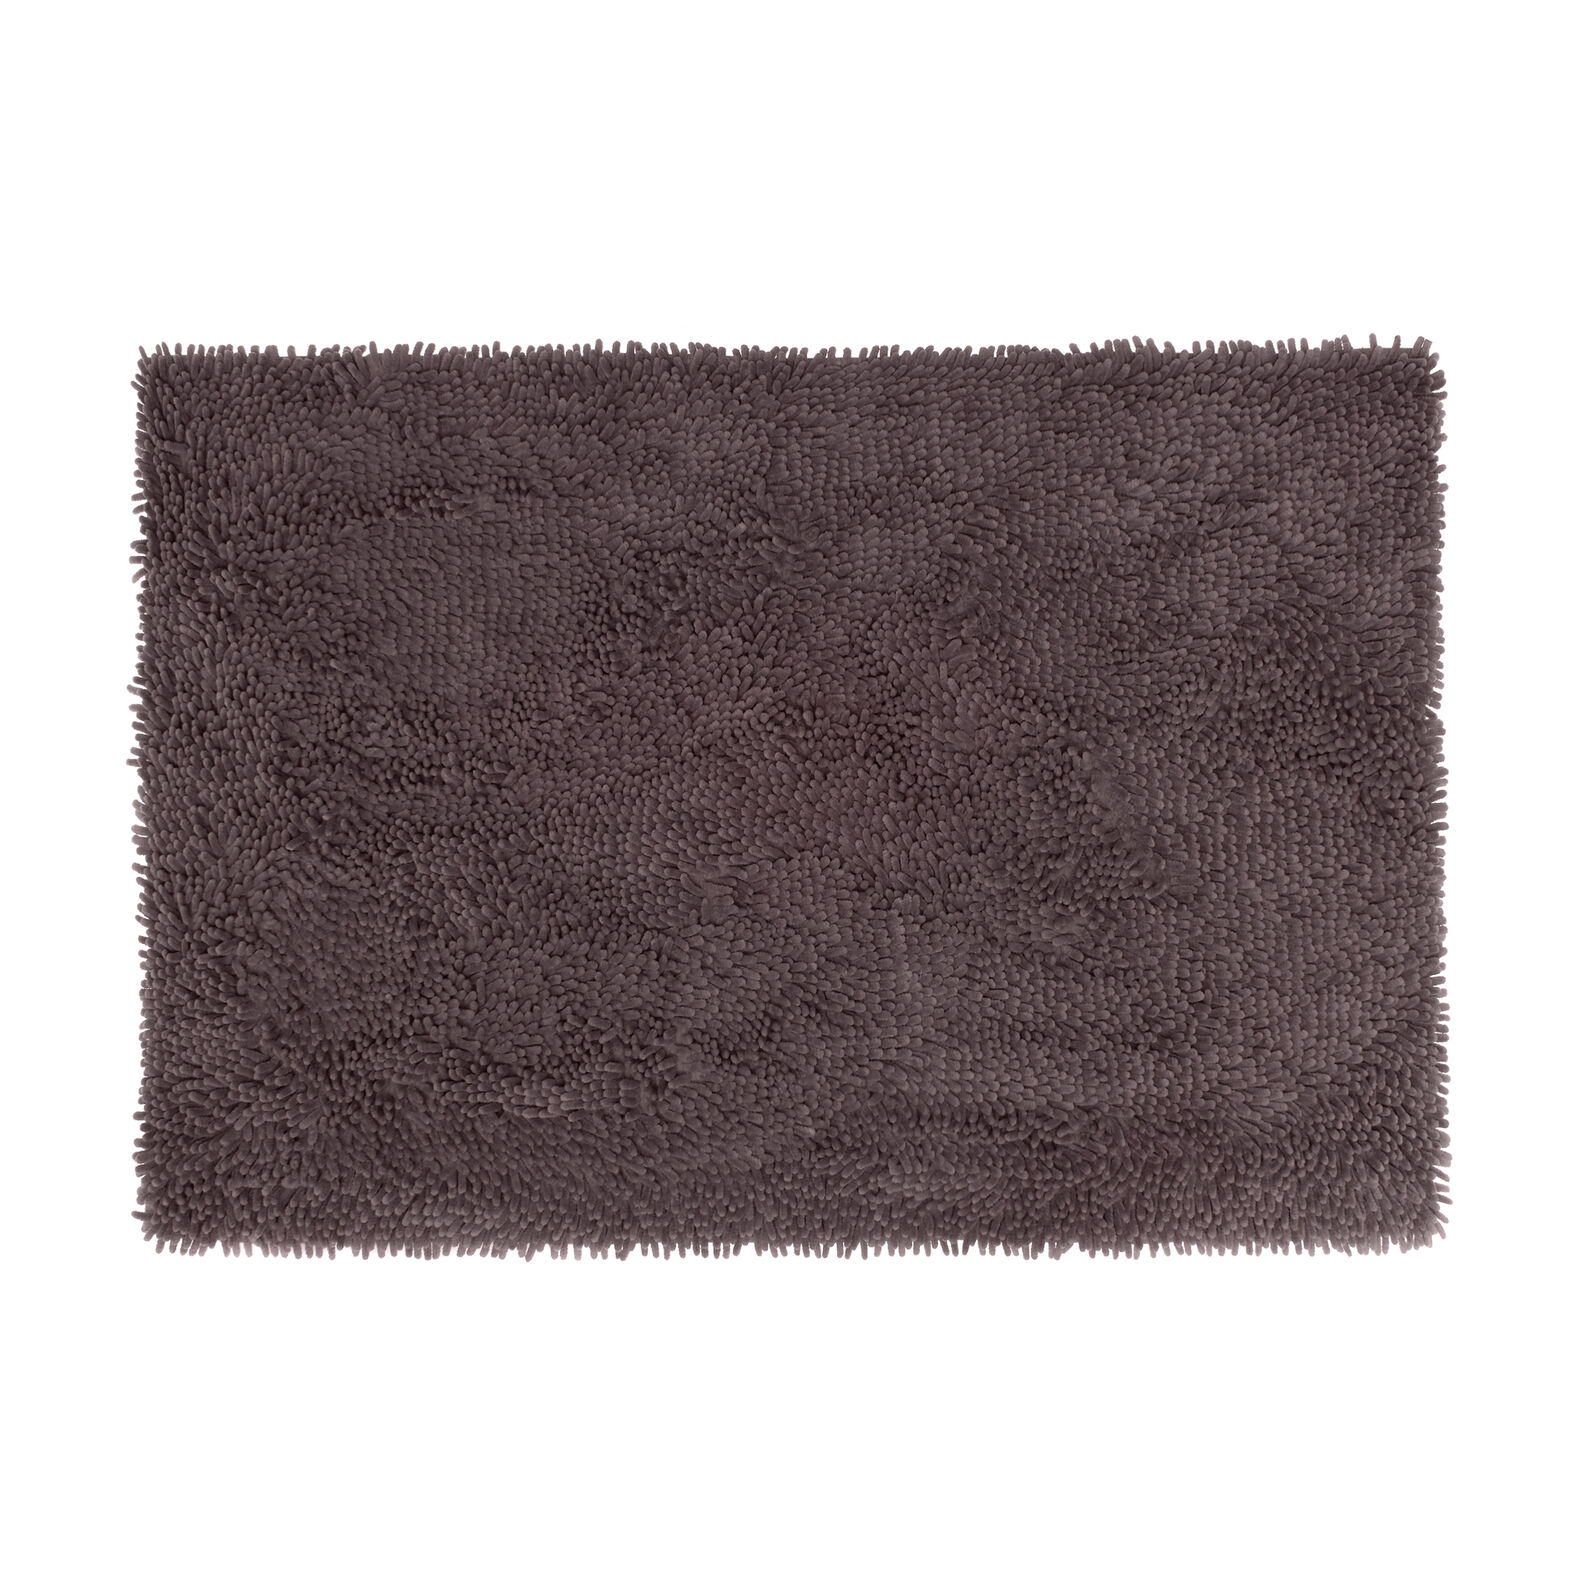 Zefiro Gold shaggy micro fleece bath mat